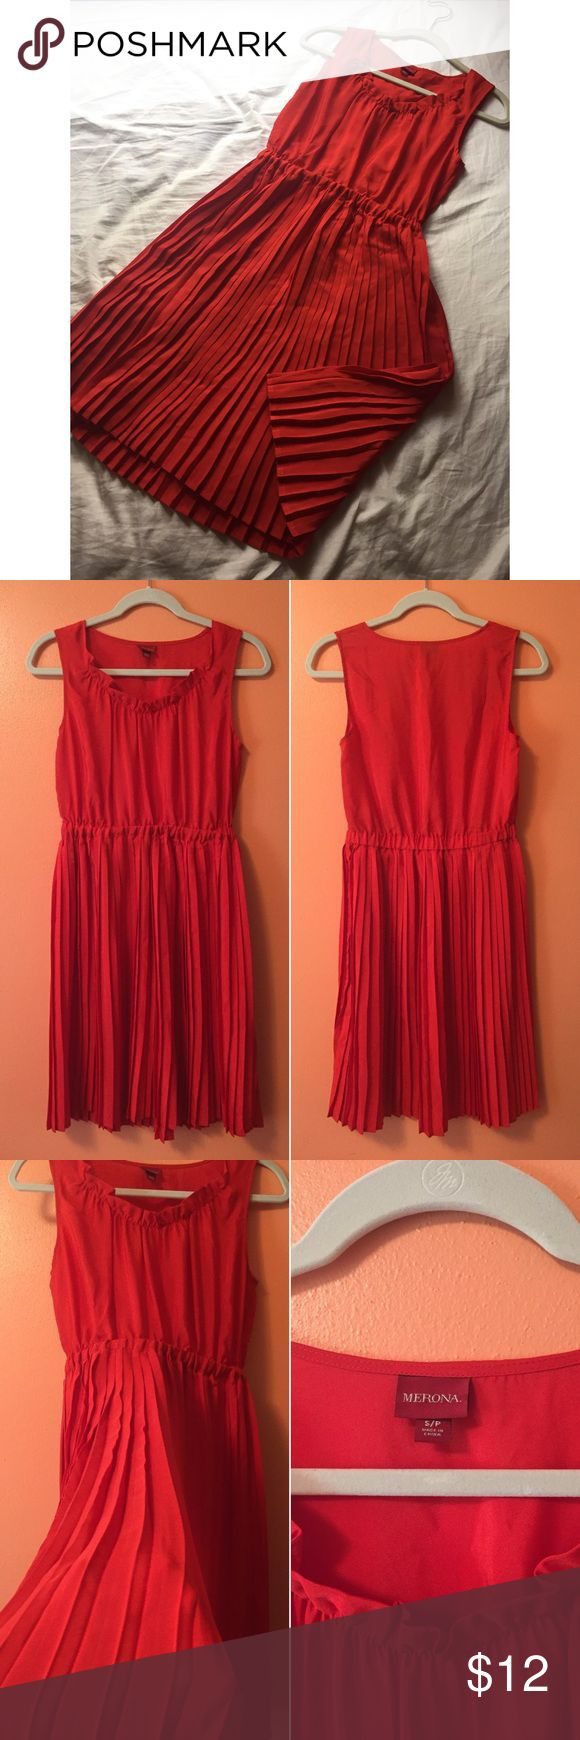 Brand new red pleated dress This dress is in perfect condition! It looks great on its own during the day, or dressing it up for a night out. The material itself has no stretch, but it does have an elastic waistband. Thanks for looking! Merona Dresses